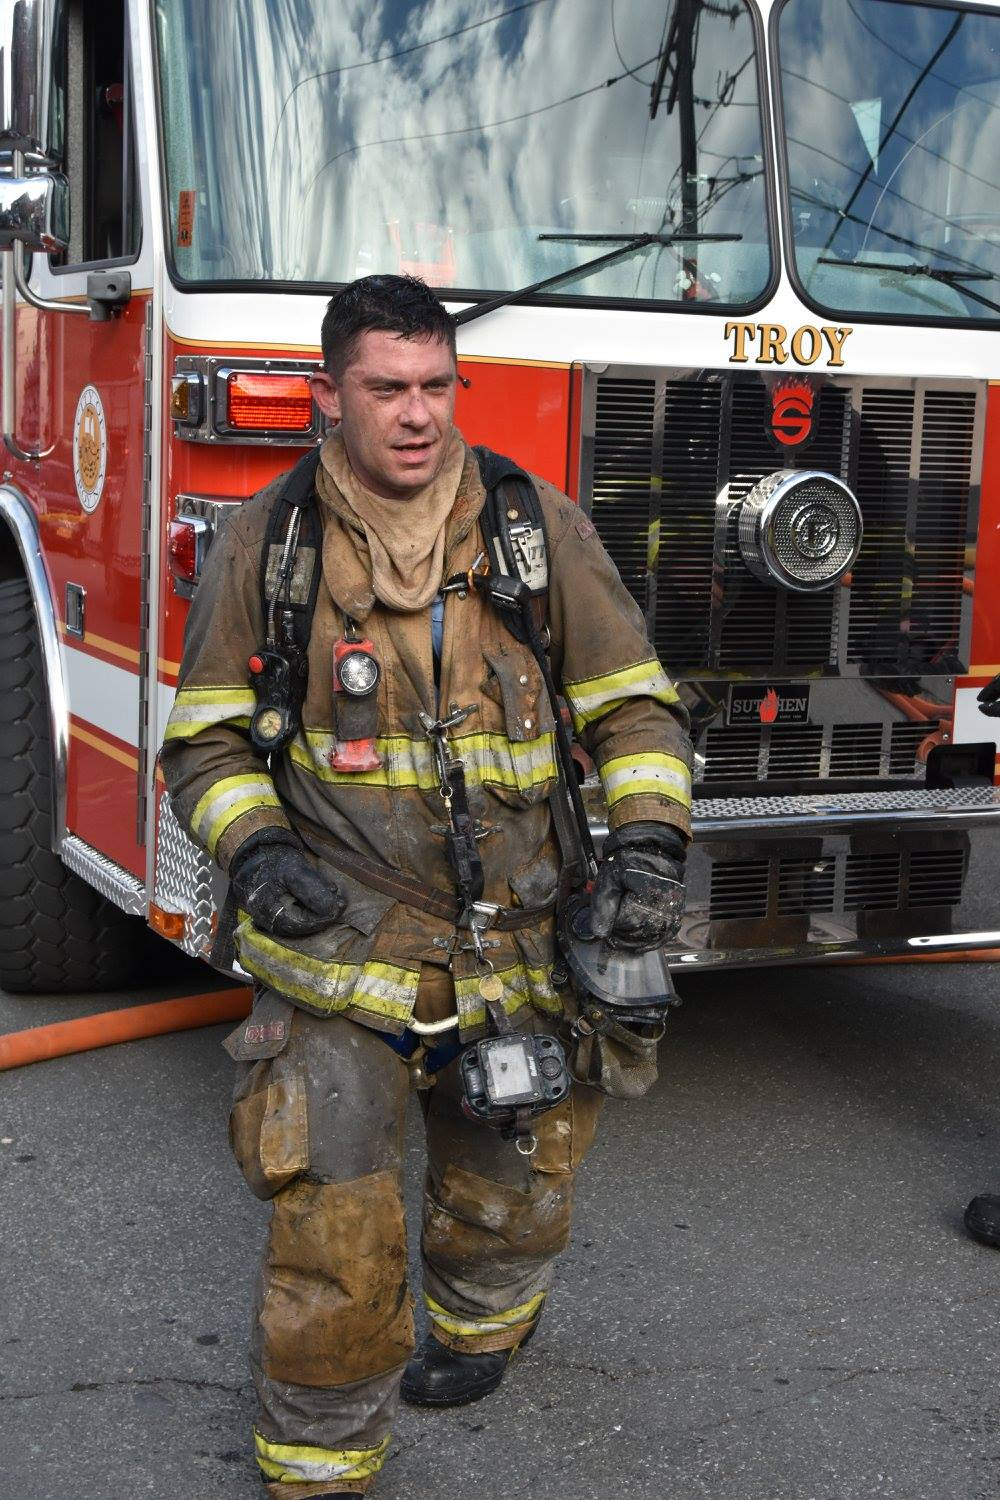 Matt Dudek  Troy, NY Fire Dept.